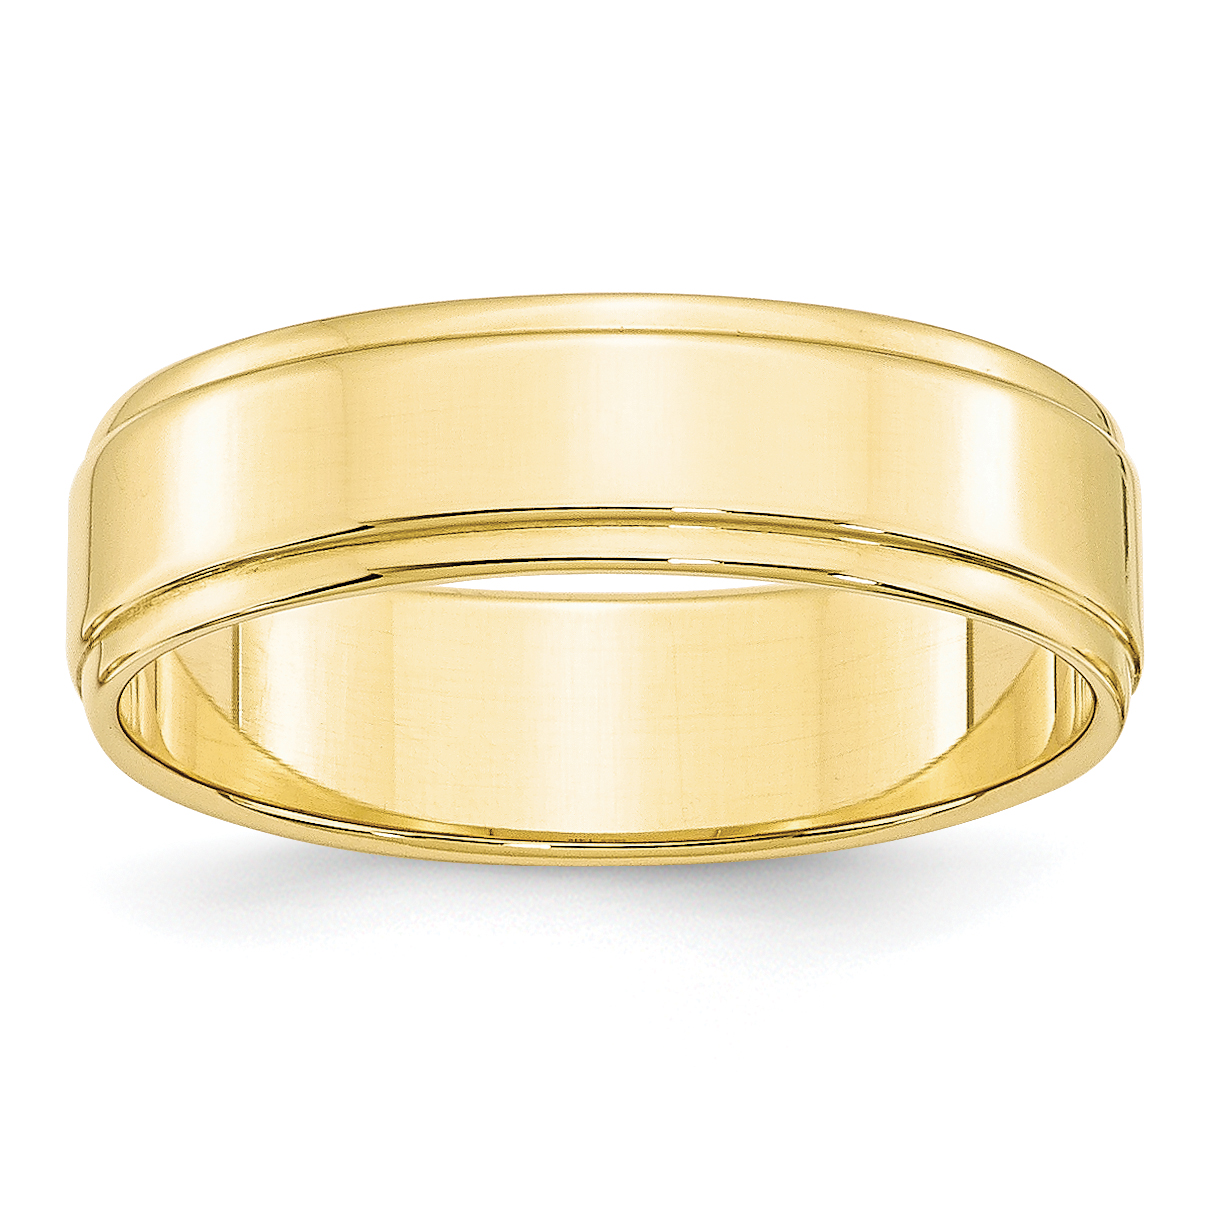 10K Yellow Gold 6mm Flat with Step Edge Band Size 13 - image 3 de 3